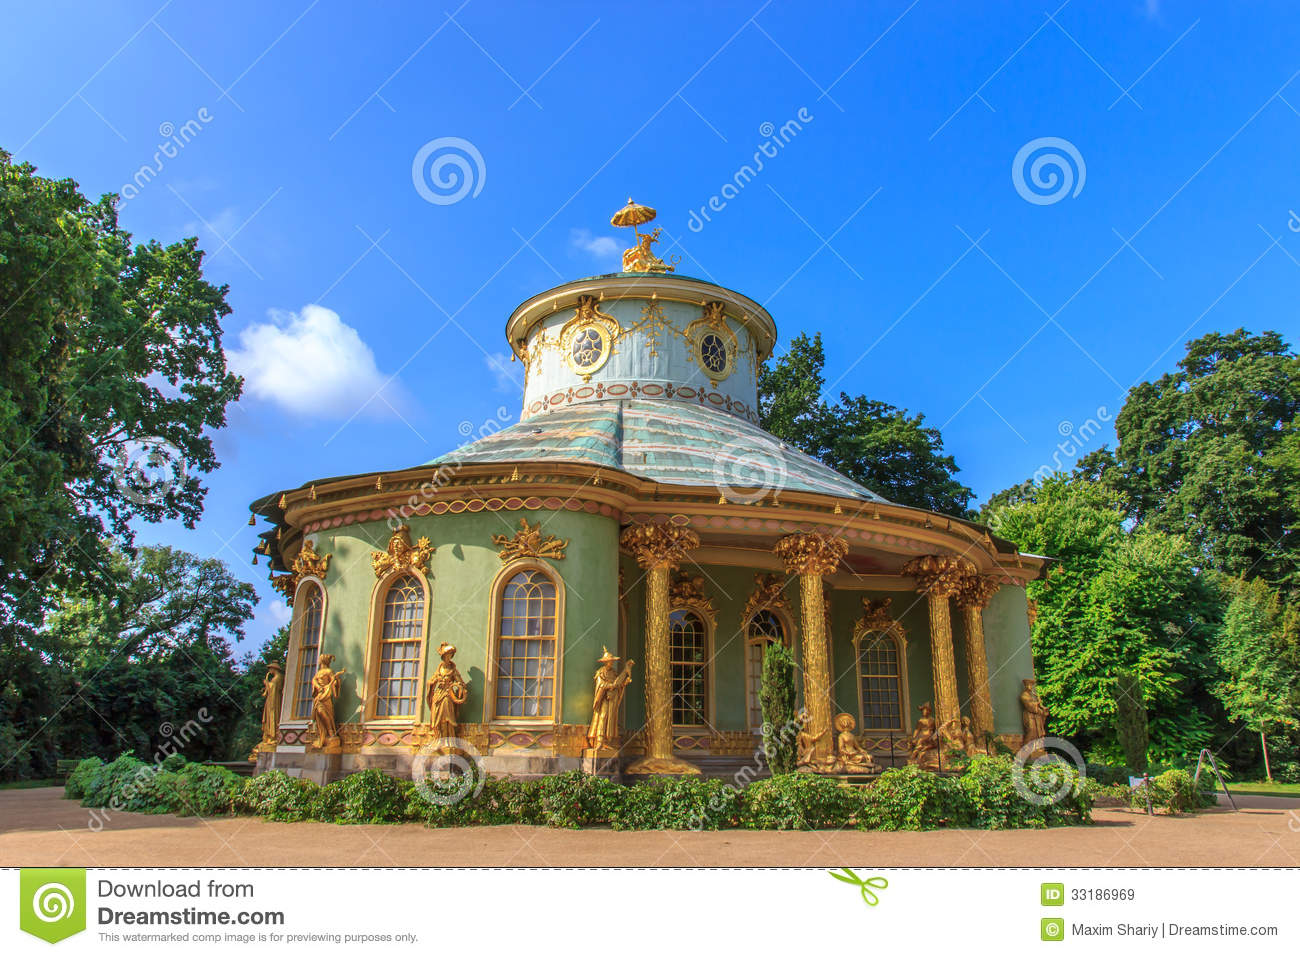 The Chinese Tea House In The Park Ensemble Of Sanssouci, Potsdam.